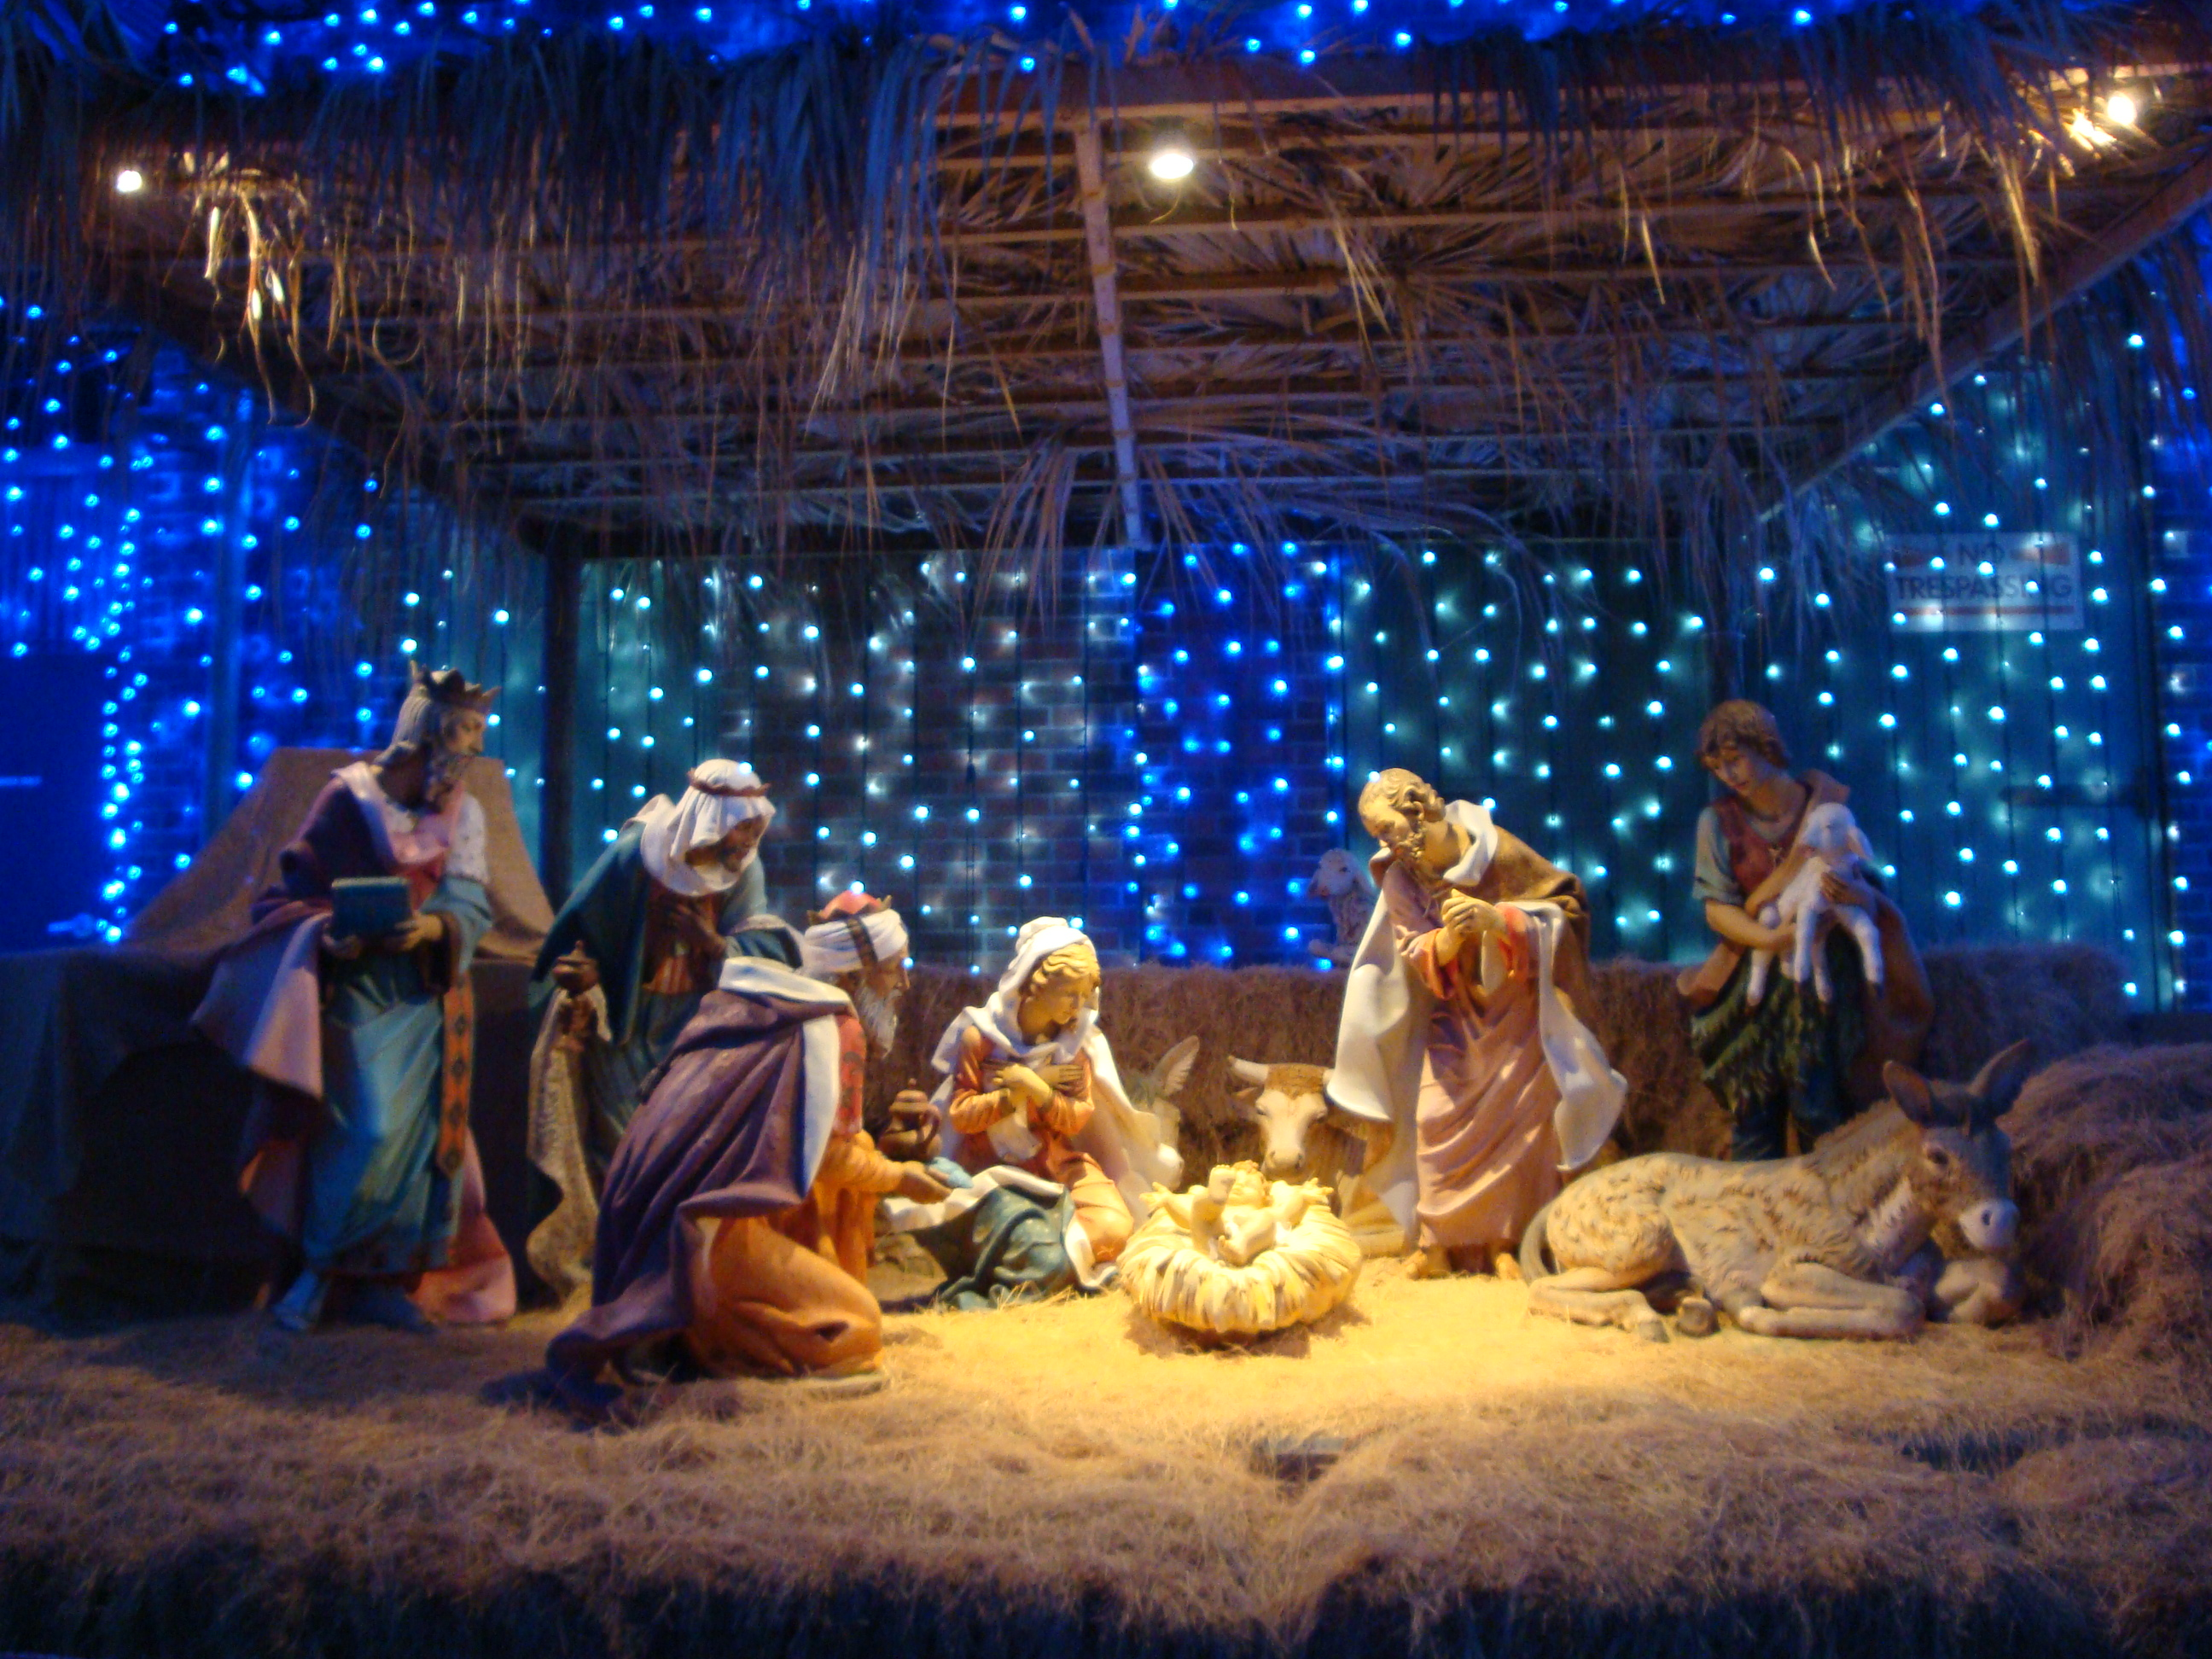 Live Animated Wallpapers For Windows 7 Free Download Full Version Download Christmas Crib Wallpaper Gallery